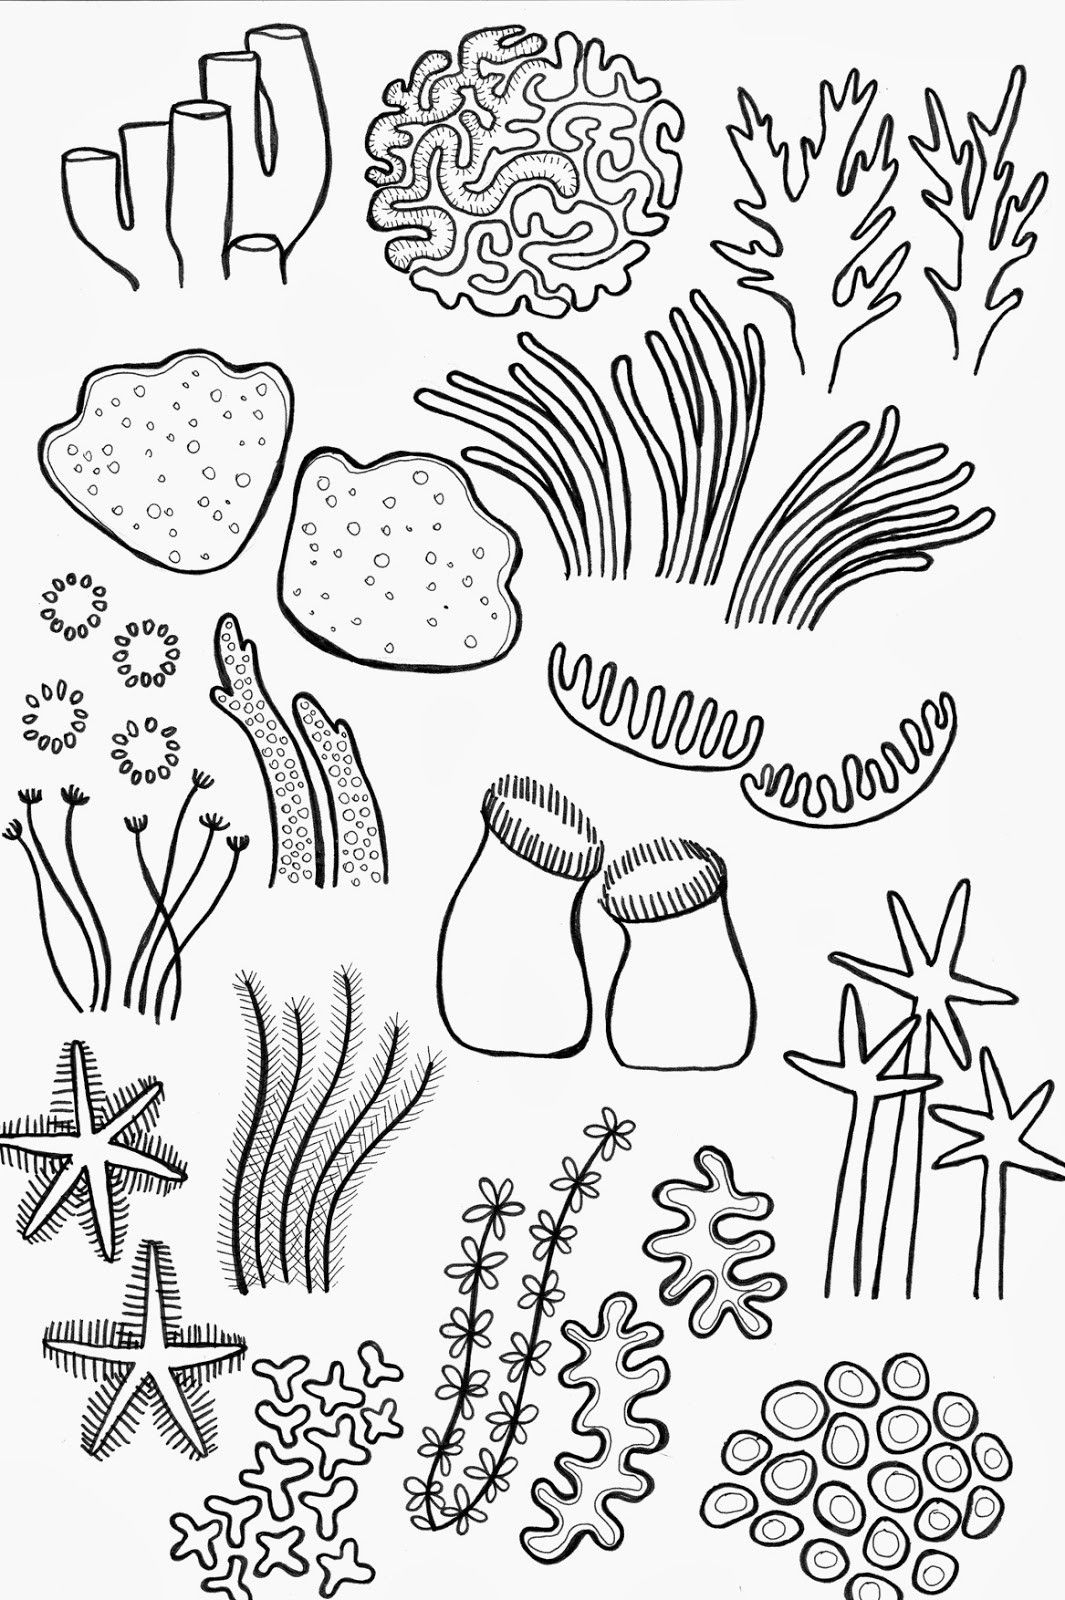 ocean plants coloring pages sea plants drawing at getdrawings free download ocean plants pages coloring